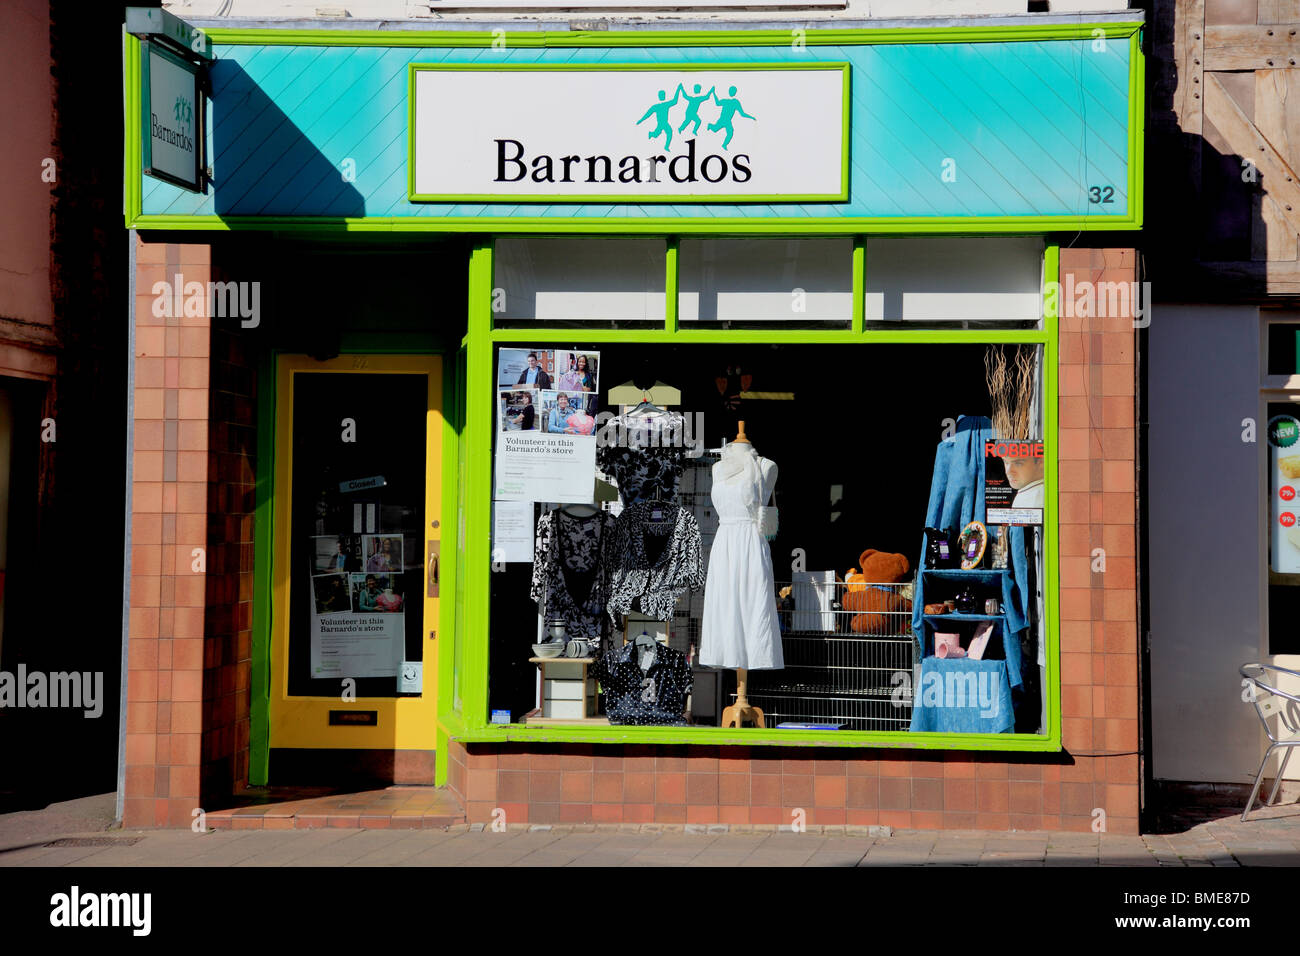 Front of the Barnado's charity shop in Market Drayton, Shropshire, raising funds to help children and young people - Stock Image